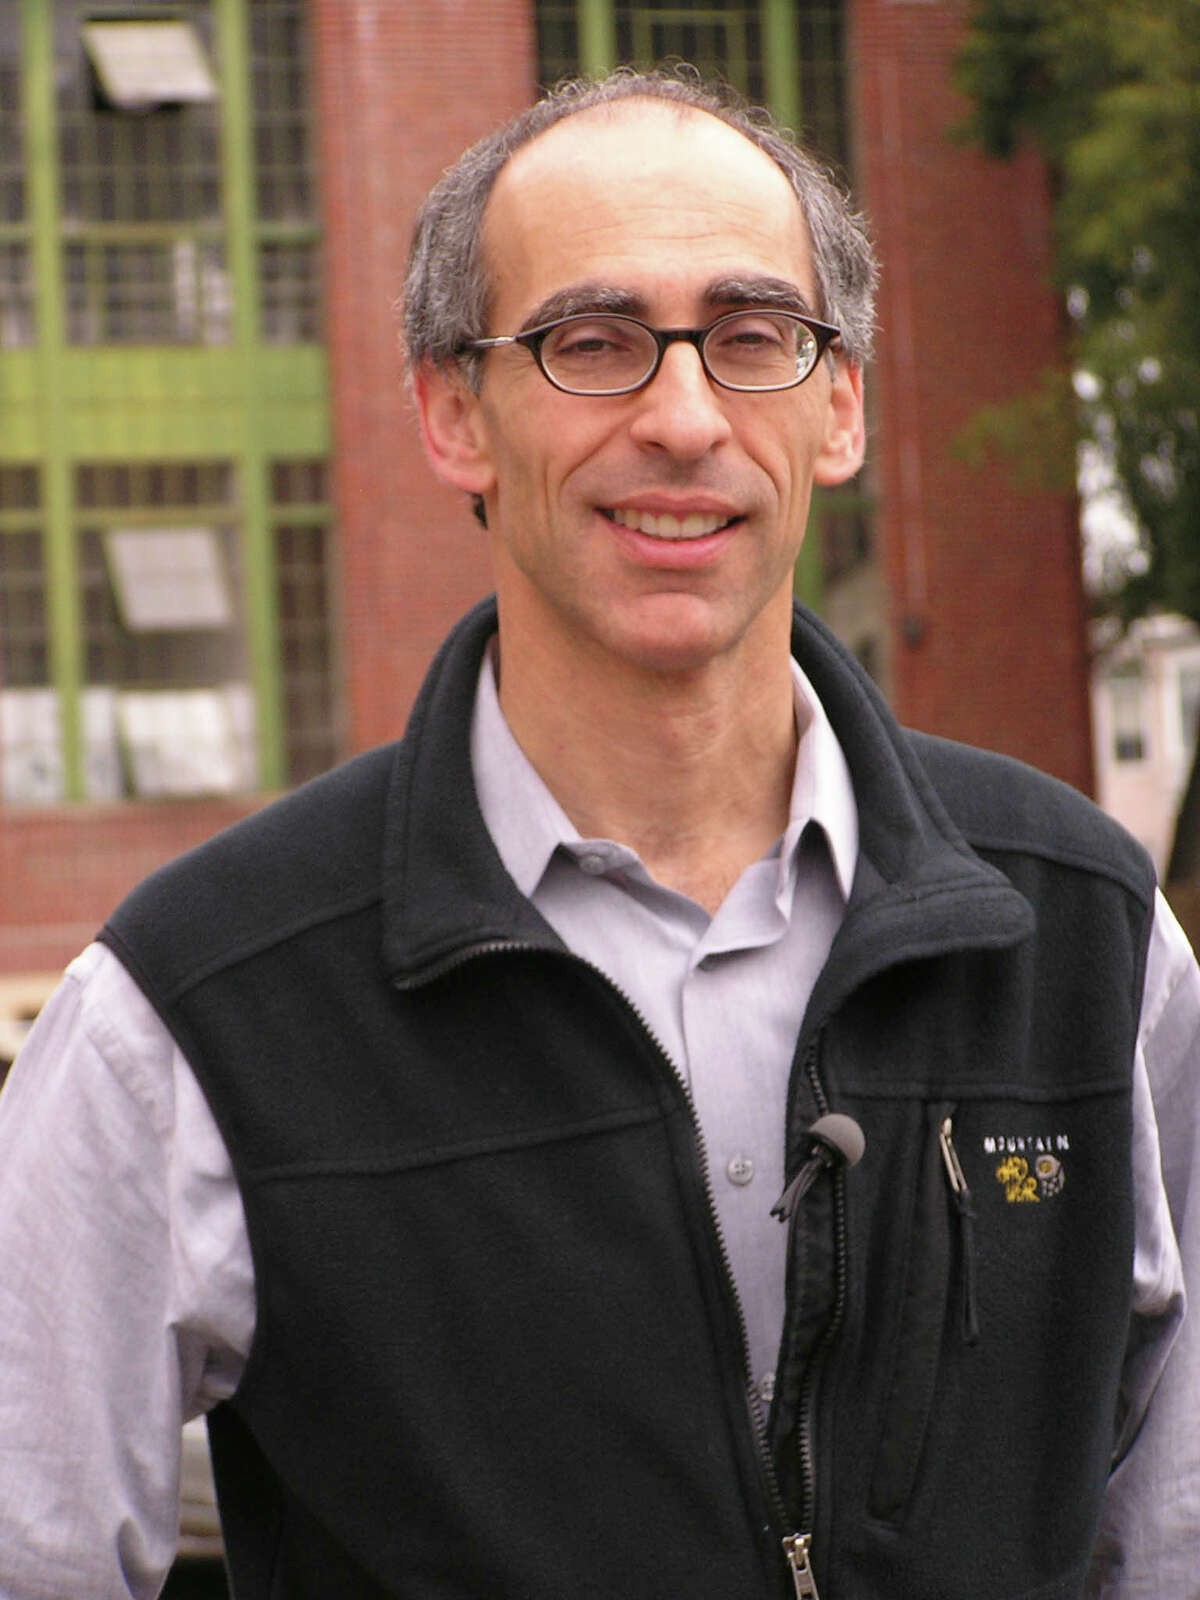 File photo of Dan Kalb, 53, one of seven candidates vying for the District 1 seat that represents North Oakland, was robbed at gunpoint Wednesday night near his home after he attended a neighborhood anti-crime meeting.